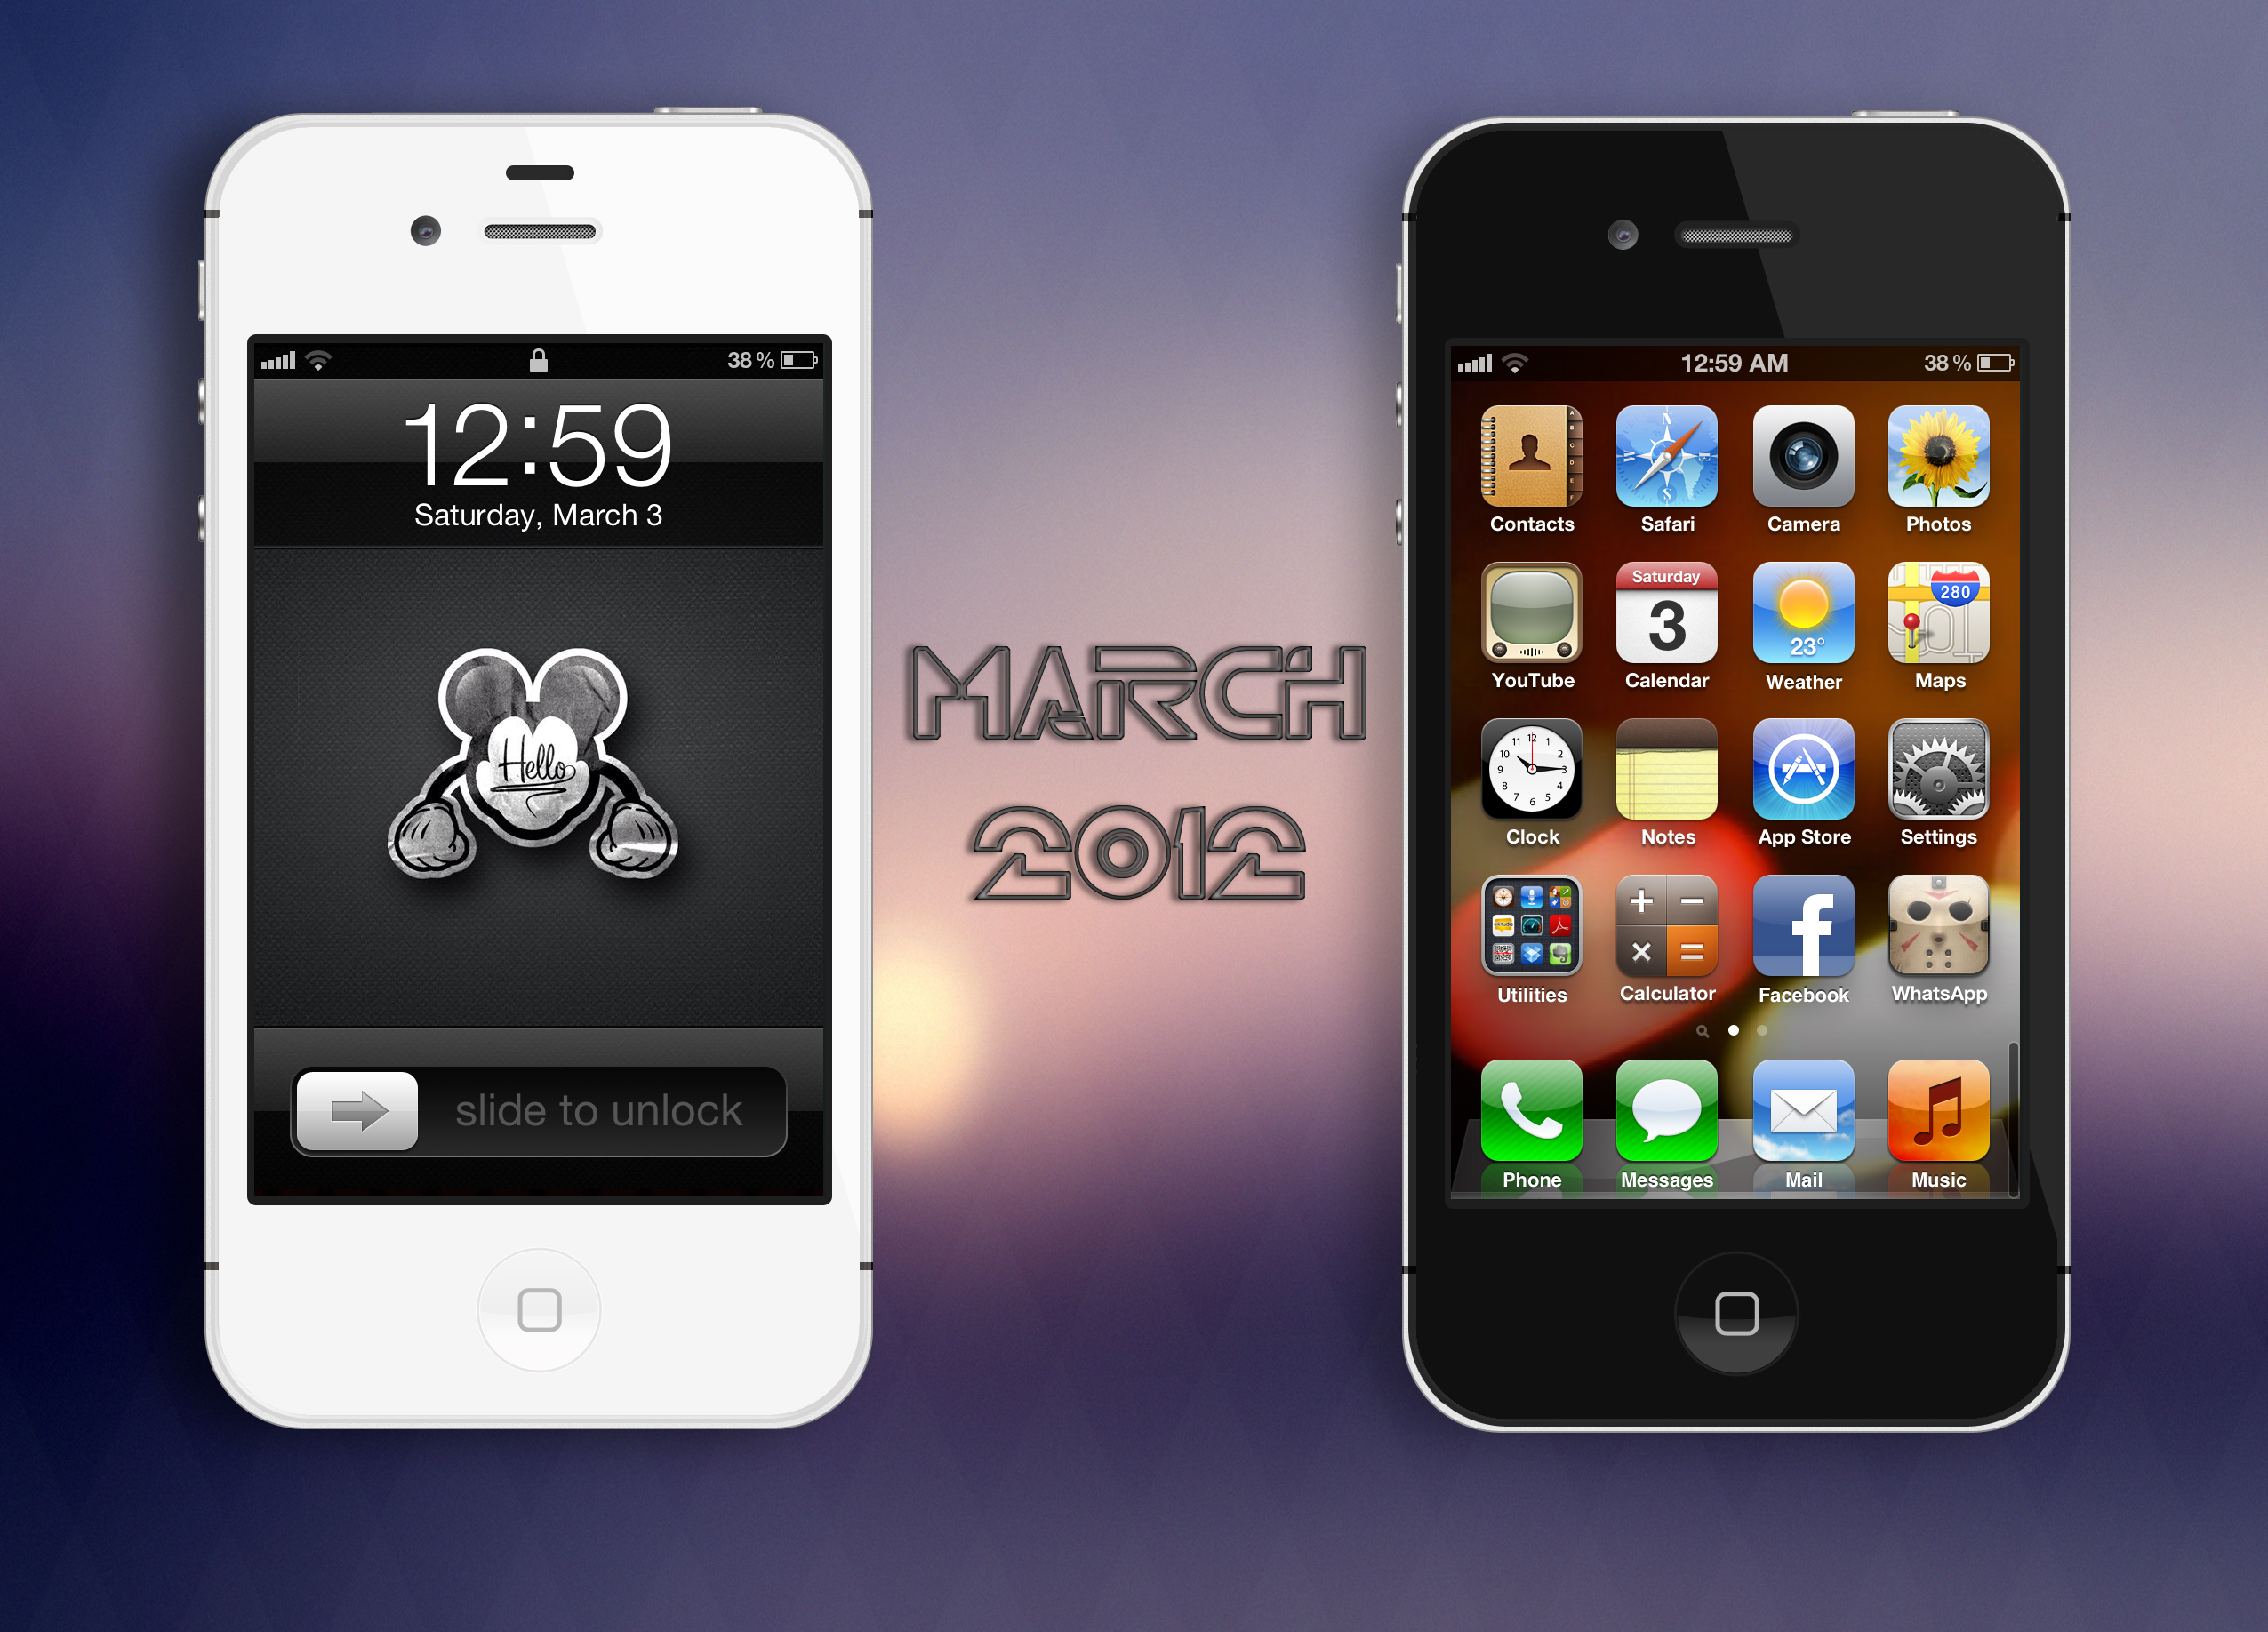 how to screenshot iphone 4 iphone screenshot march 2012 by noumi321 on deviantart 2371